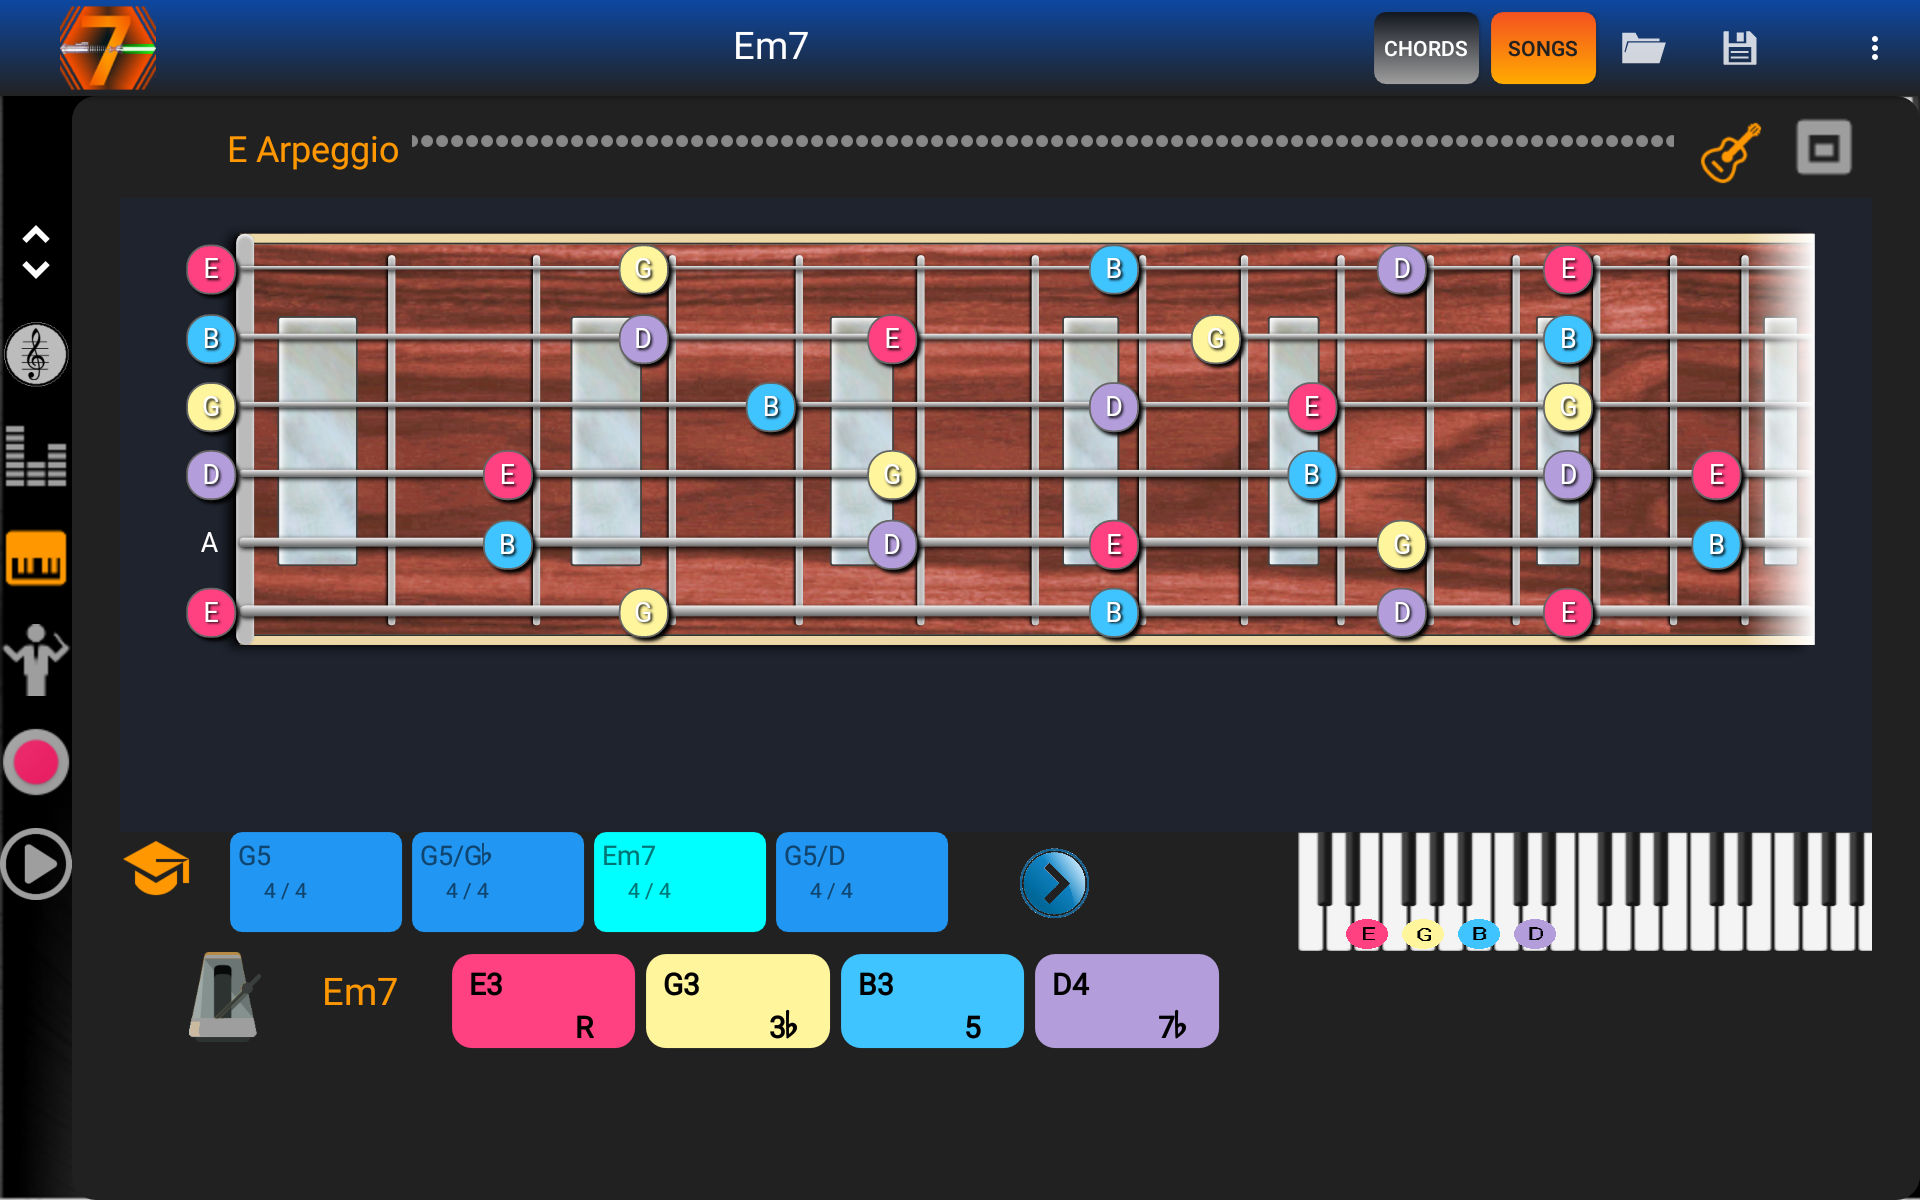 Kvr Mixtic Studio Updates 7pad Scales And Chords For Android To V201